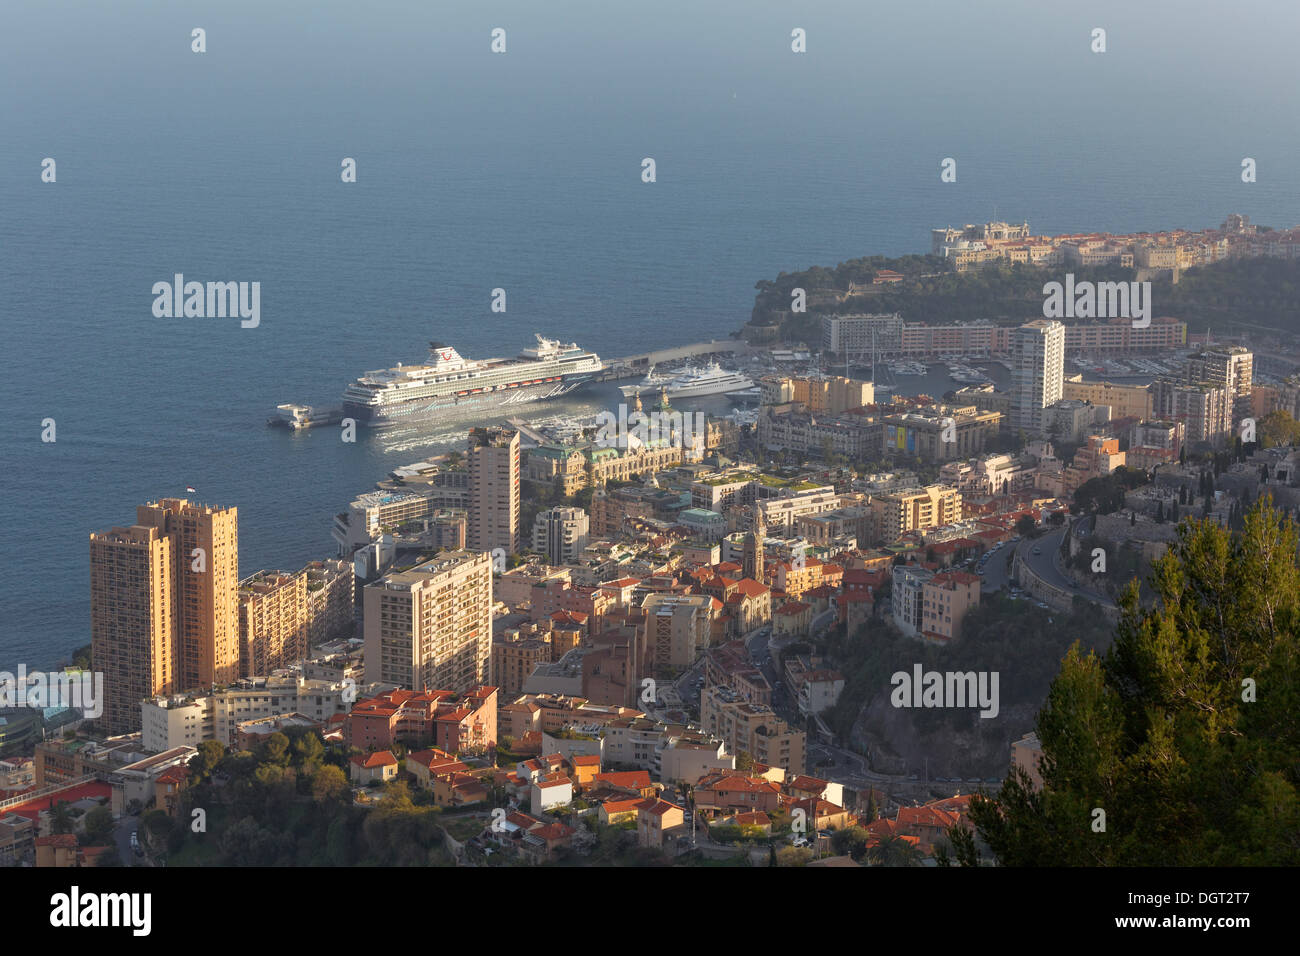 View over the Principality of Monaco, 'Mein Schiff 1' docked in the port - Stock Image